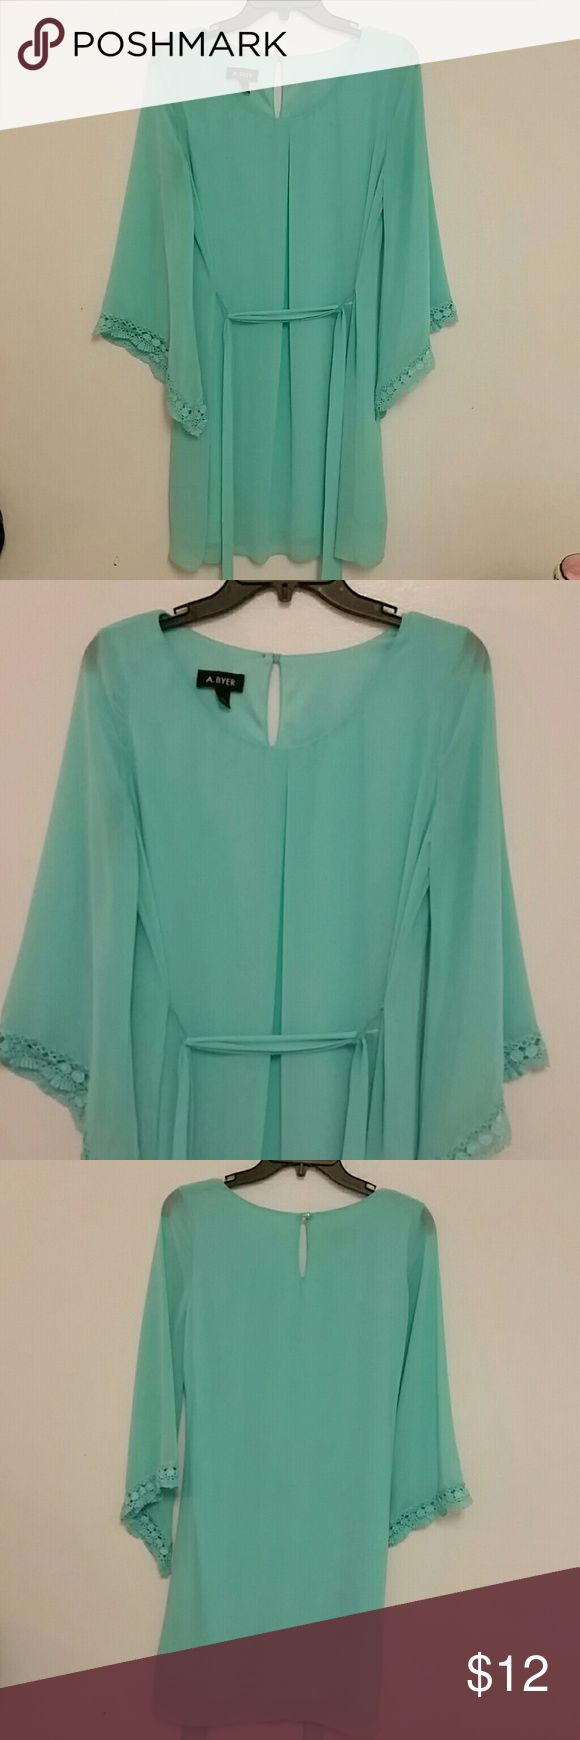 "A.Byer Dress Turquoise sheer bell sleeves dress will be an asset to any wardrobe. The sleeves has a lace type of trim and hangs perfectly, has a peep hole in the back with a button closure. This dress is so pretty has a pleat down the front and comes with a frabric belt. The color alone makes this dress stand out. The material is 100% polyester and so is the lining. The measurements ate 17"" across the chest and approximately 26"" from arm pit to hem. A.Byer Dresses Midi"